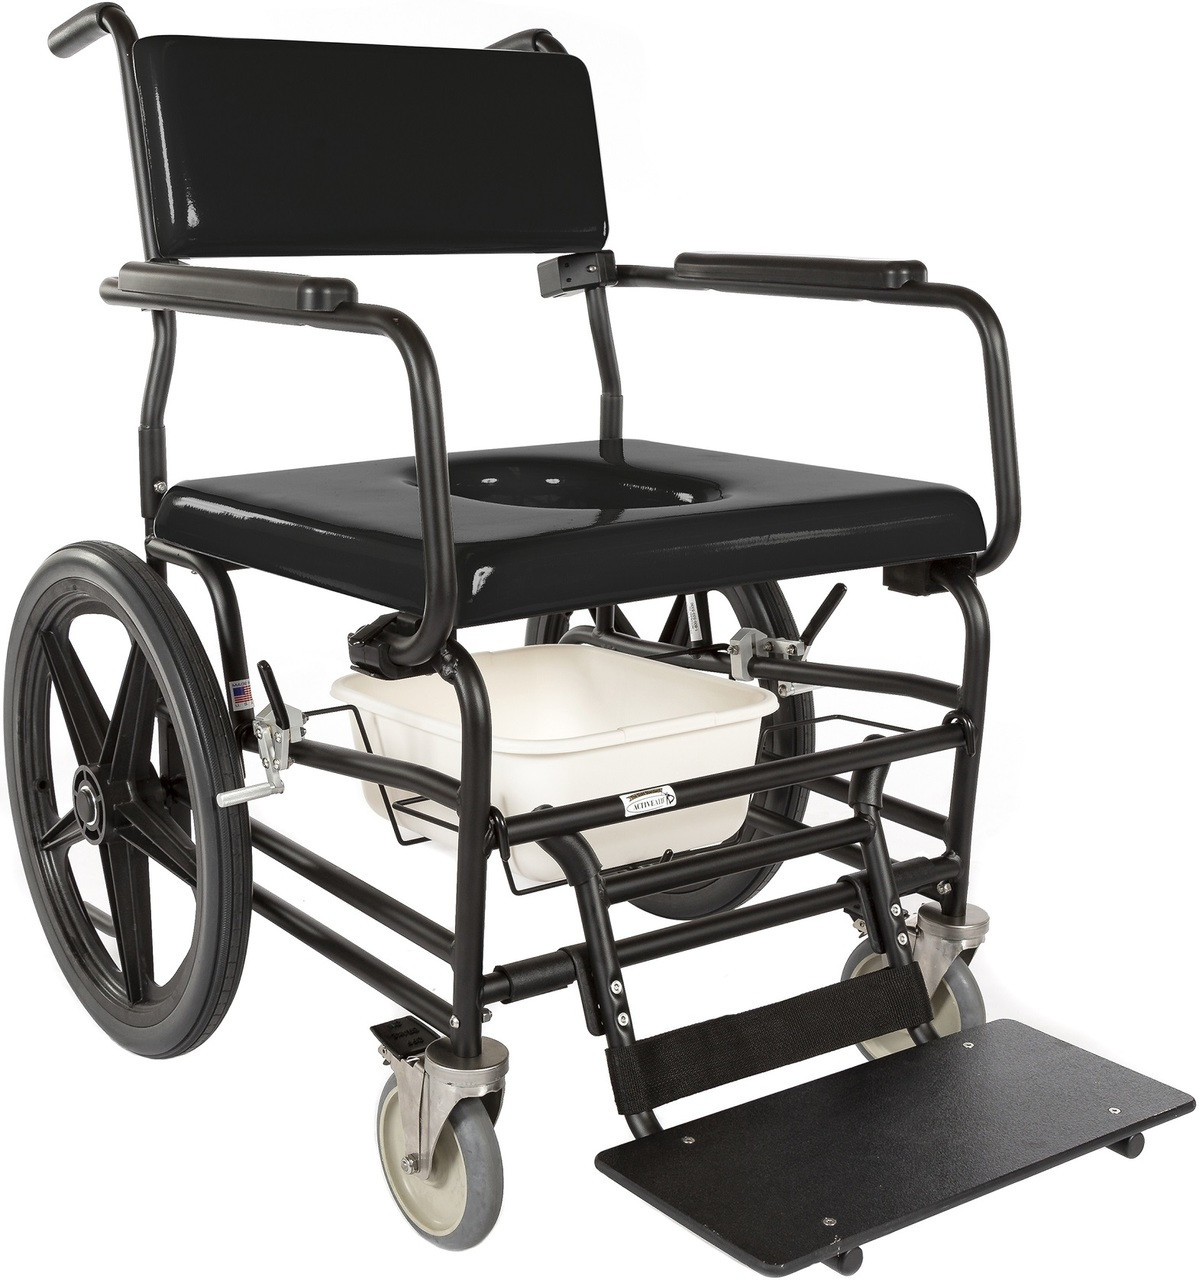 Bariatric Chair Heavy Duty Rolling Commode Shower Chair 720 By Activeaid